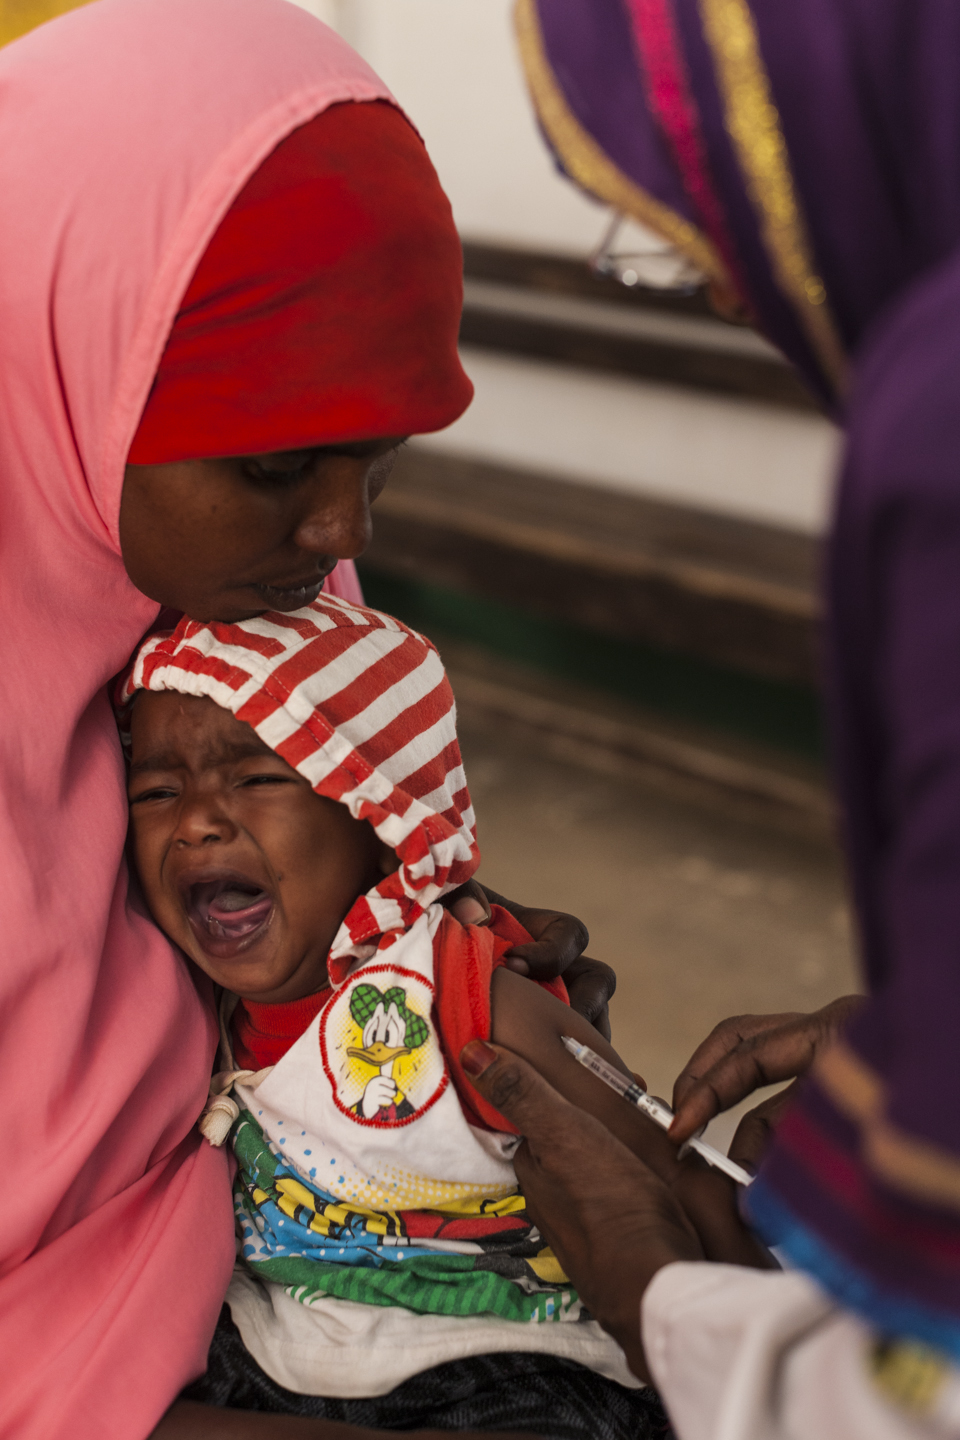 Muuna sits with her four-month-old son Abdi while getting his vaccinations at the Central Burao Maternal and Child Health Center in Somaliland, November 12, 2014.